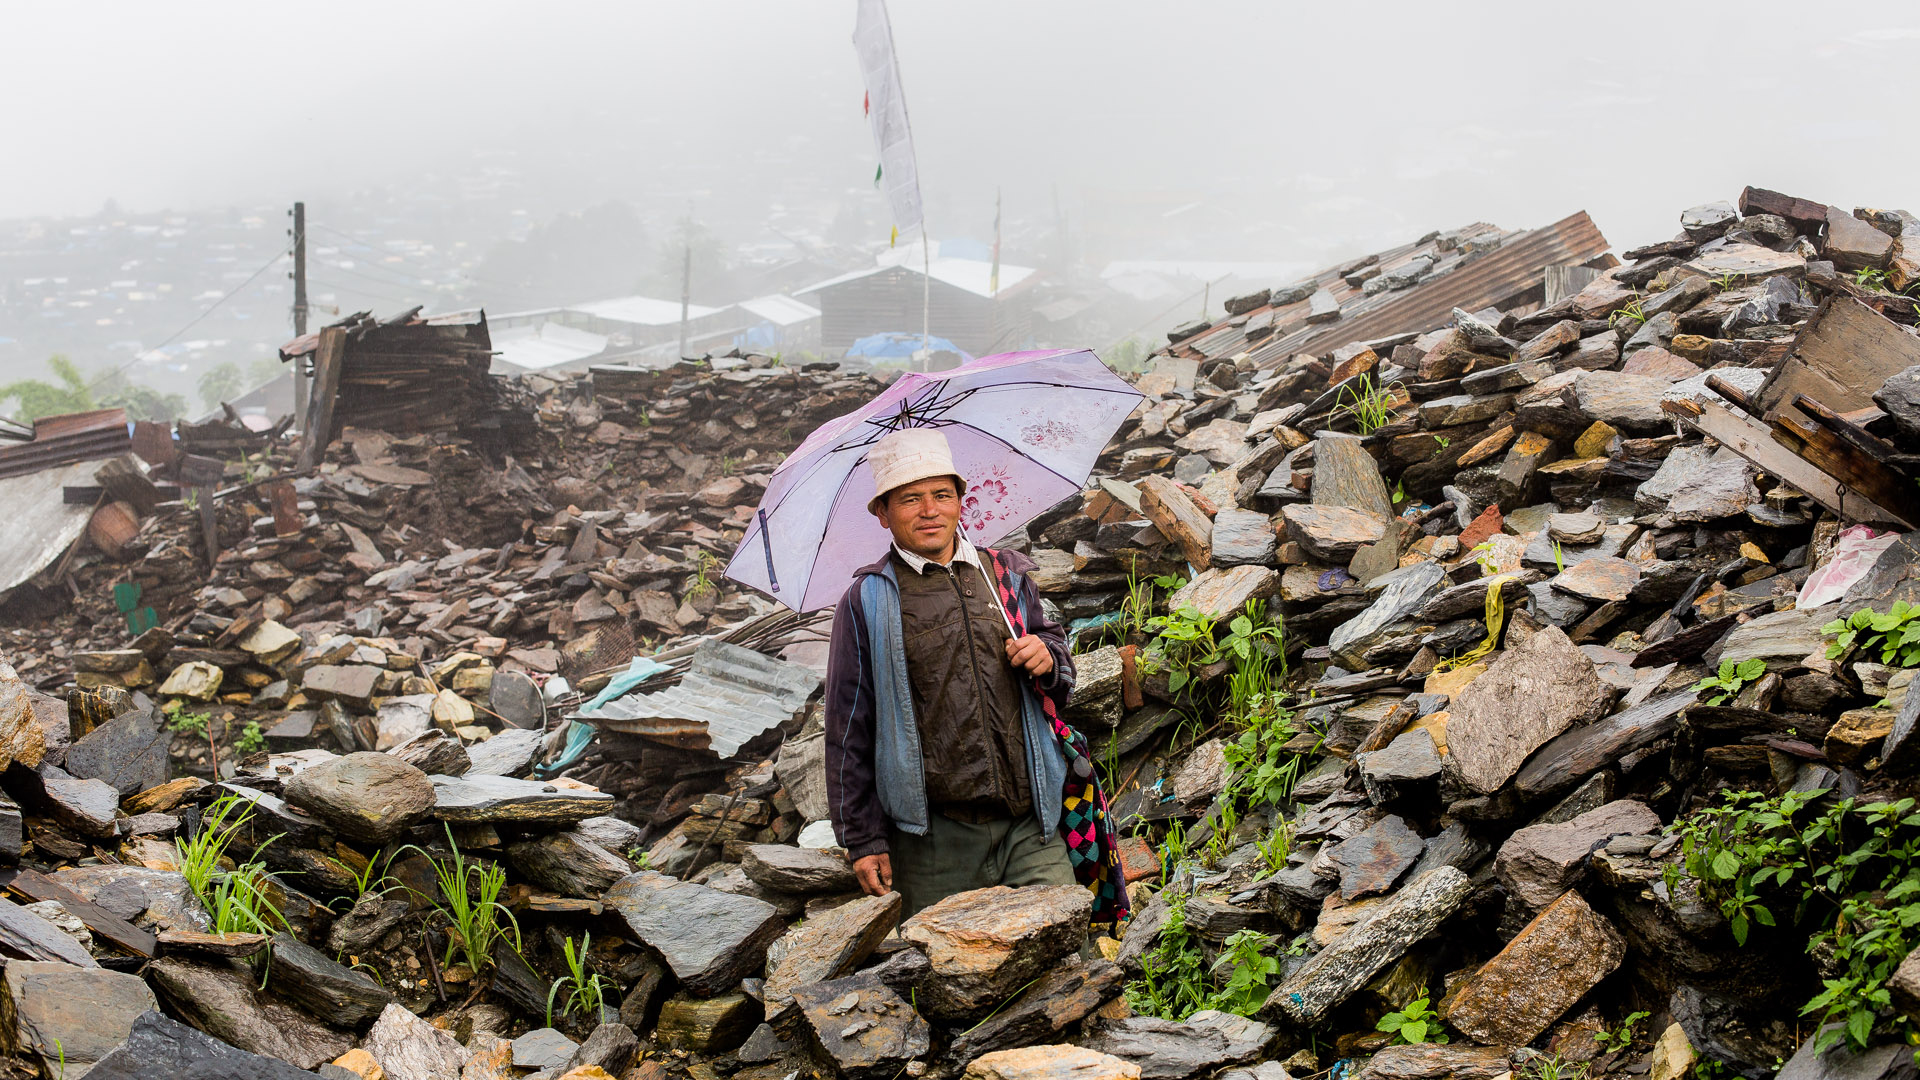 Villager of Barpak walking around in the area where their village was and now is a warbled of ruins.